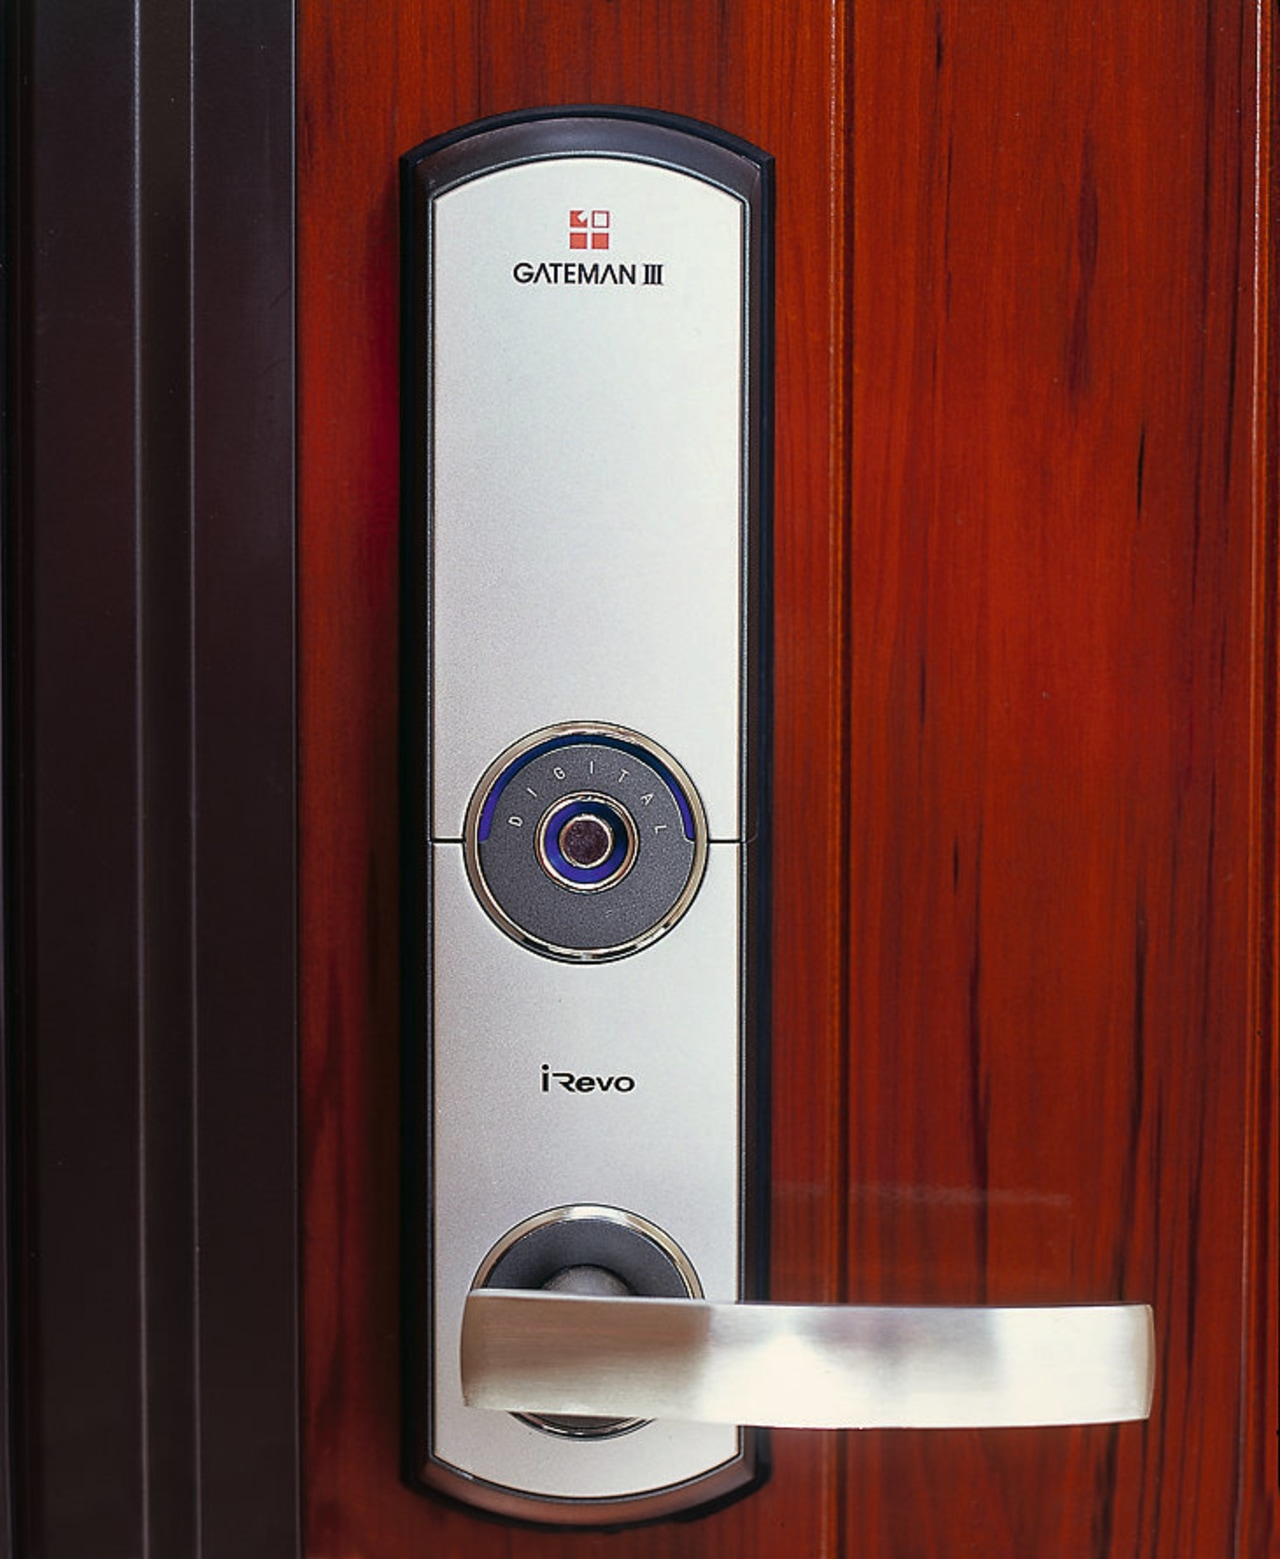 A close look at the digital lock & hardware, lock, product, product design, red, black